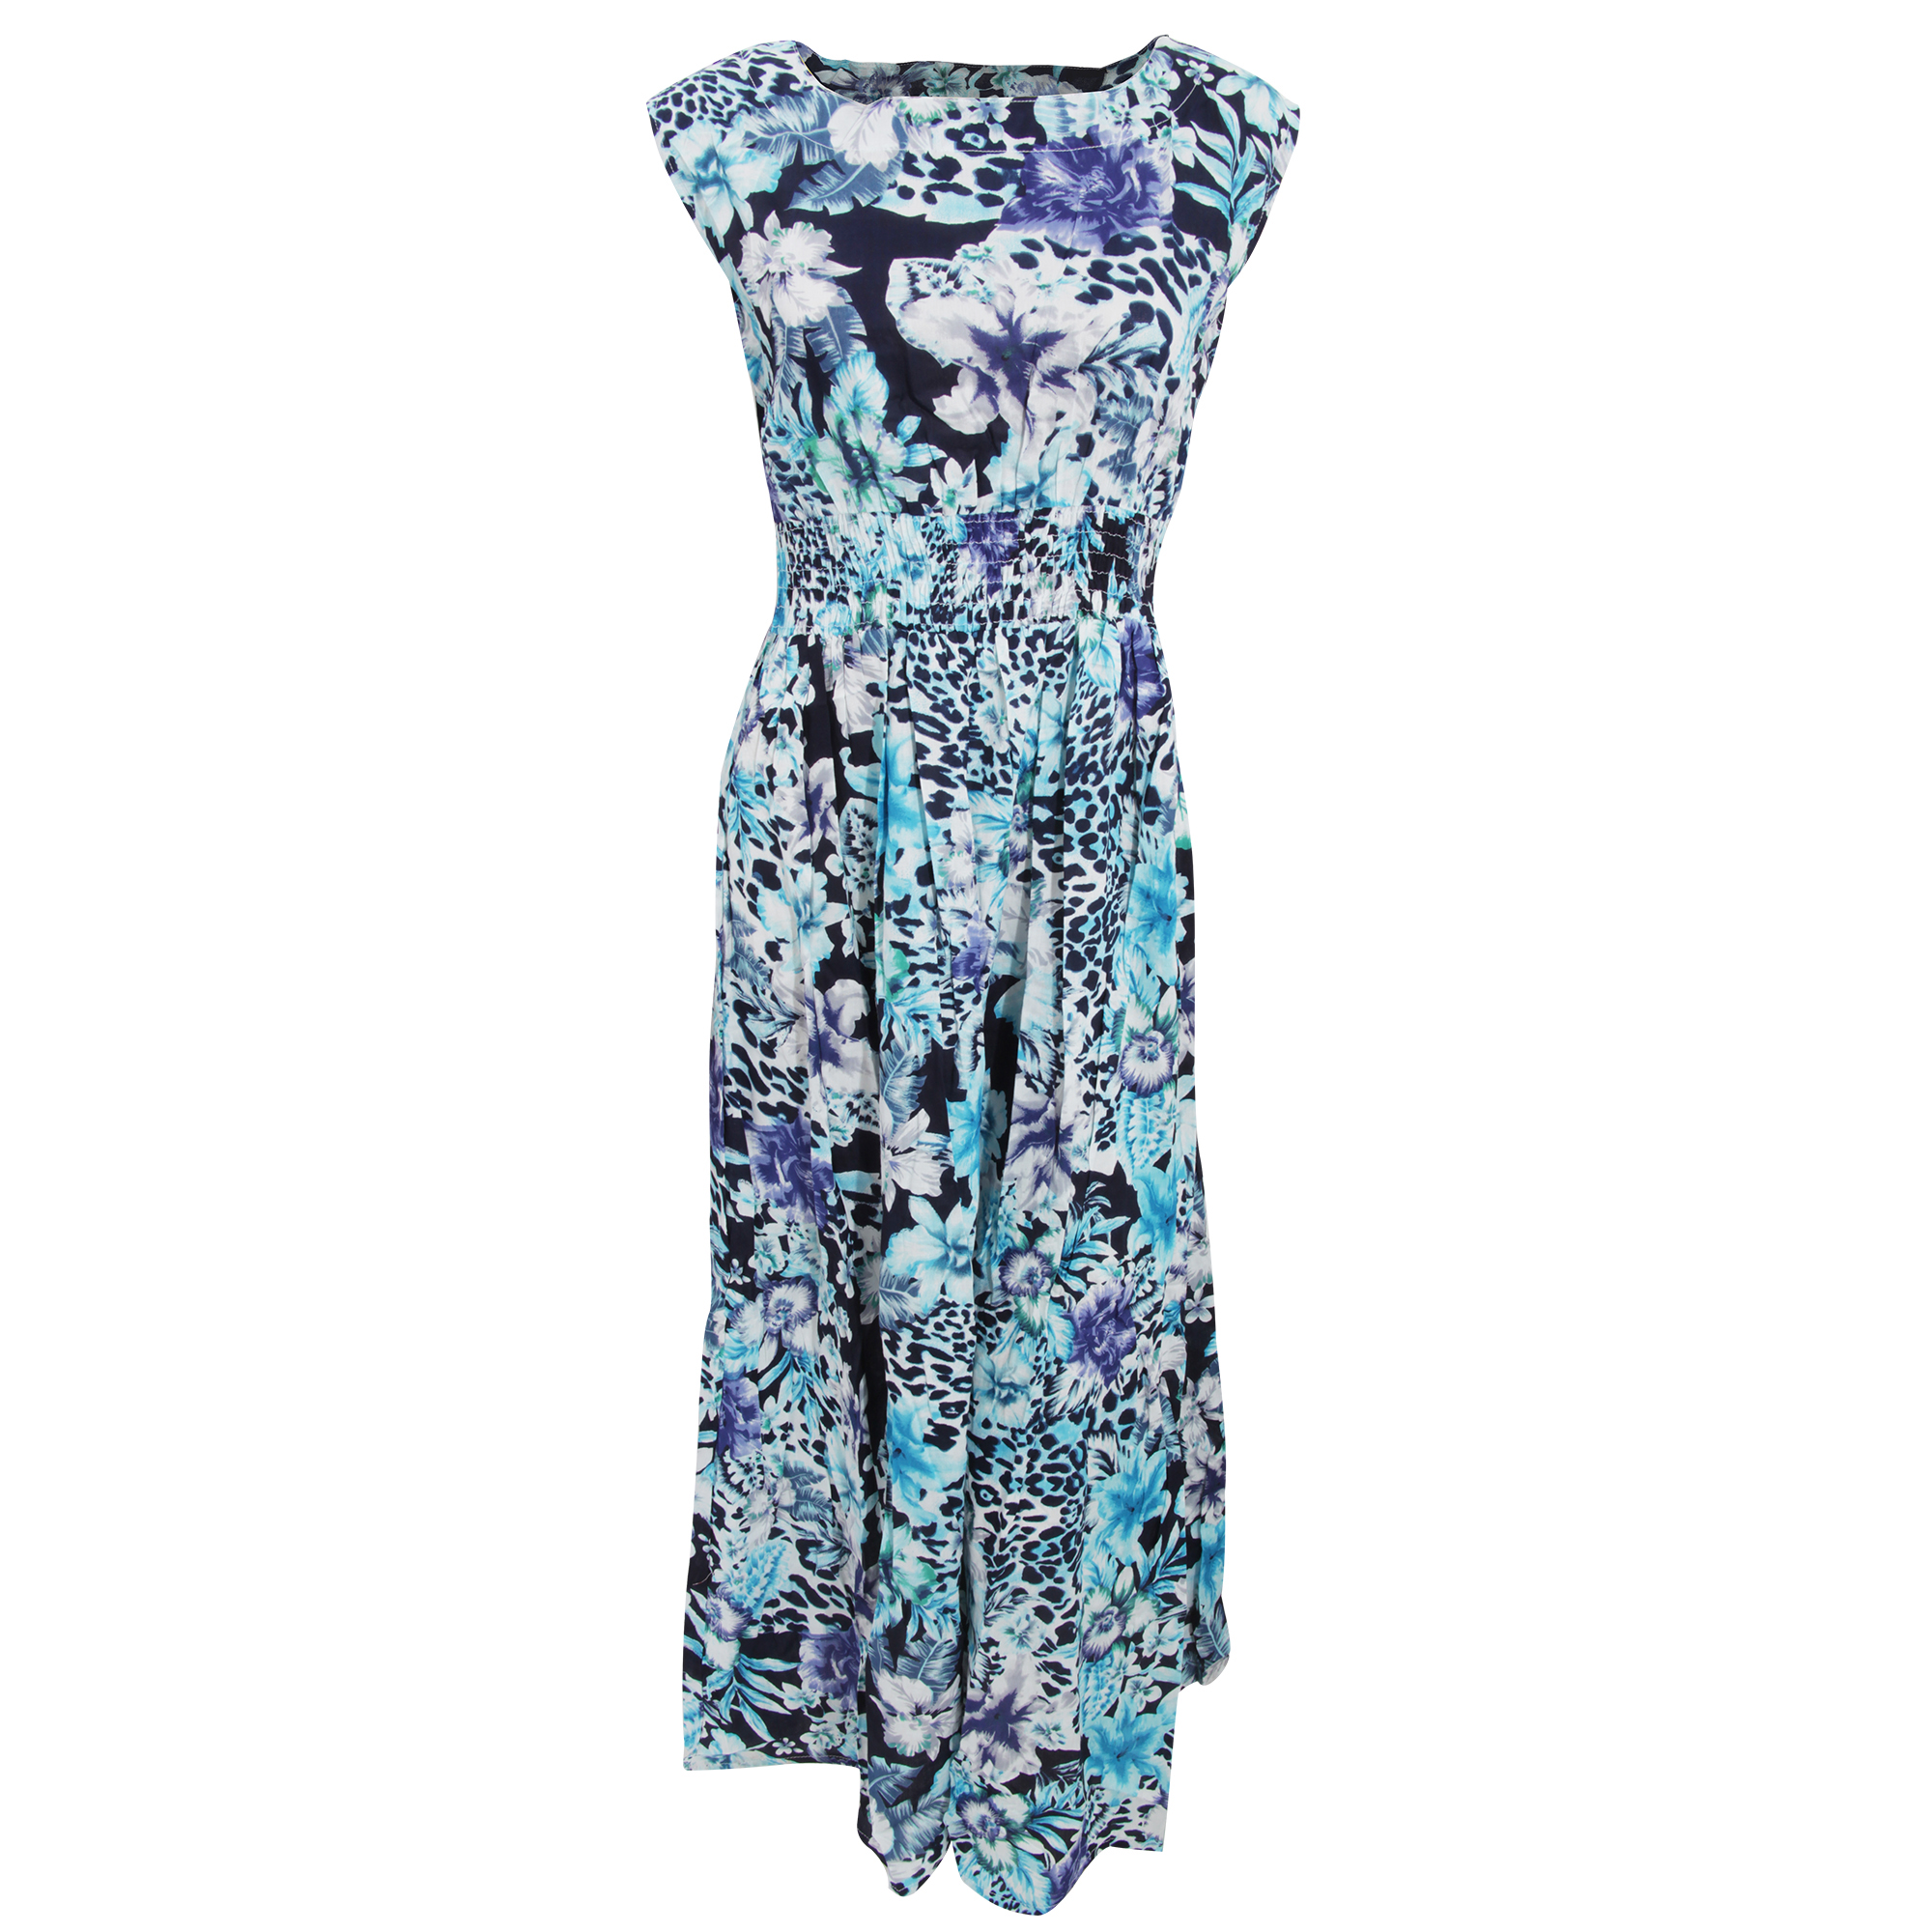 Bulk, Wholesale, Job Lot, Clearance Assorted Clothing (Dresses, Tops, Footwear And More) (Box 20) (Womens Blue Floral Leopard Dresses (Set of 41))